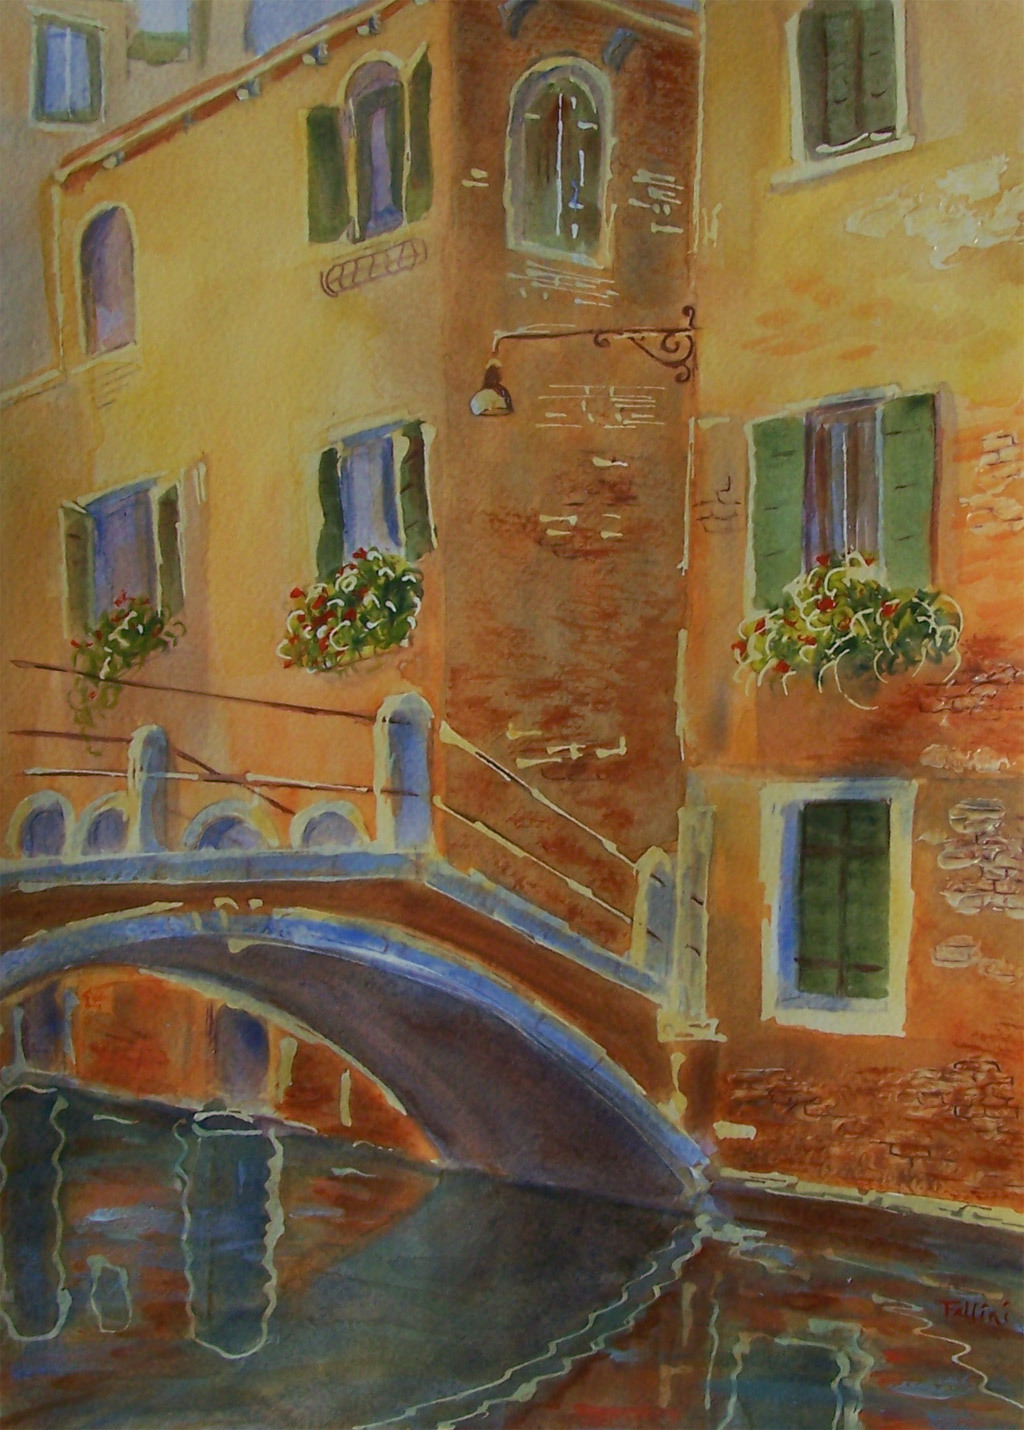 "Venice Italy original acrylic painting on paper 11""x15"" by contemporary artist Monica Fallini"